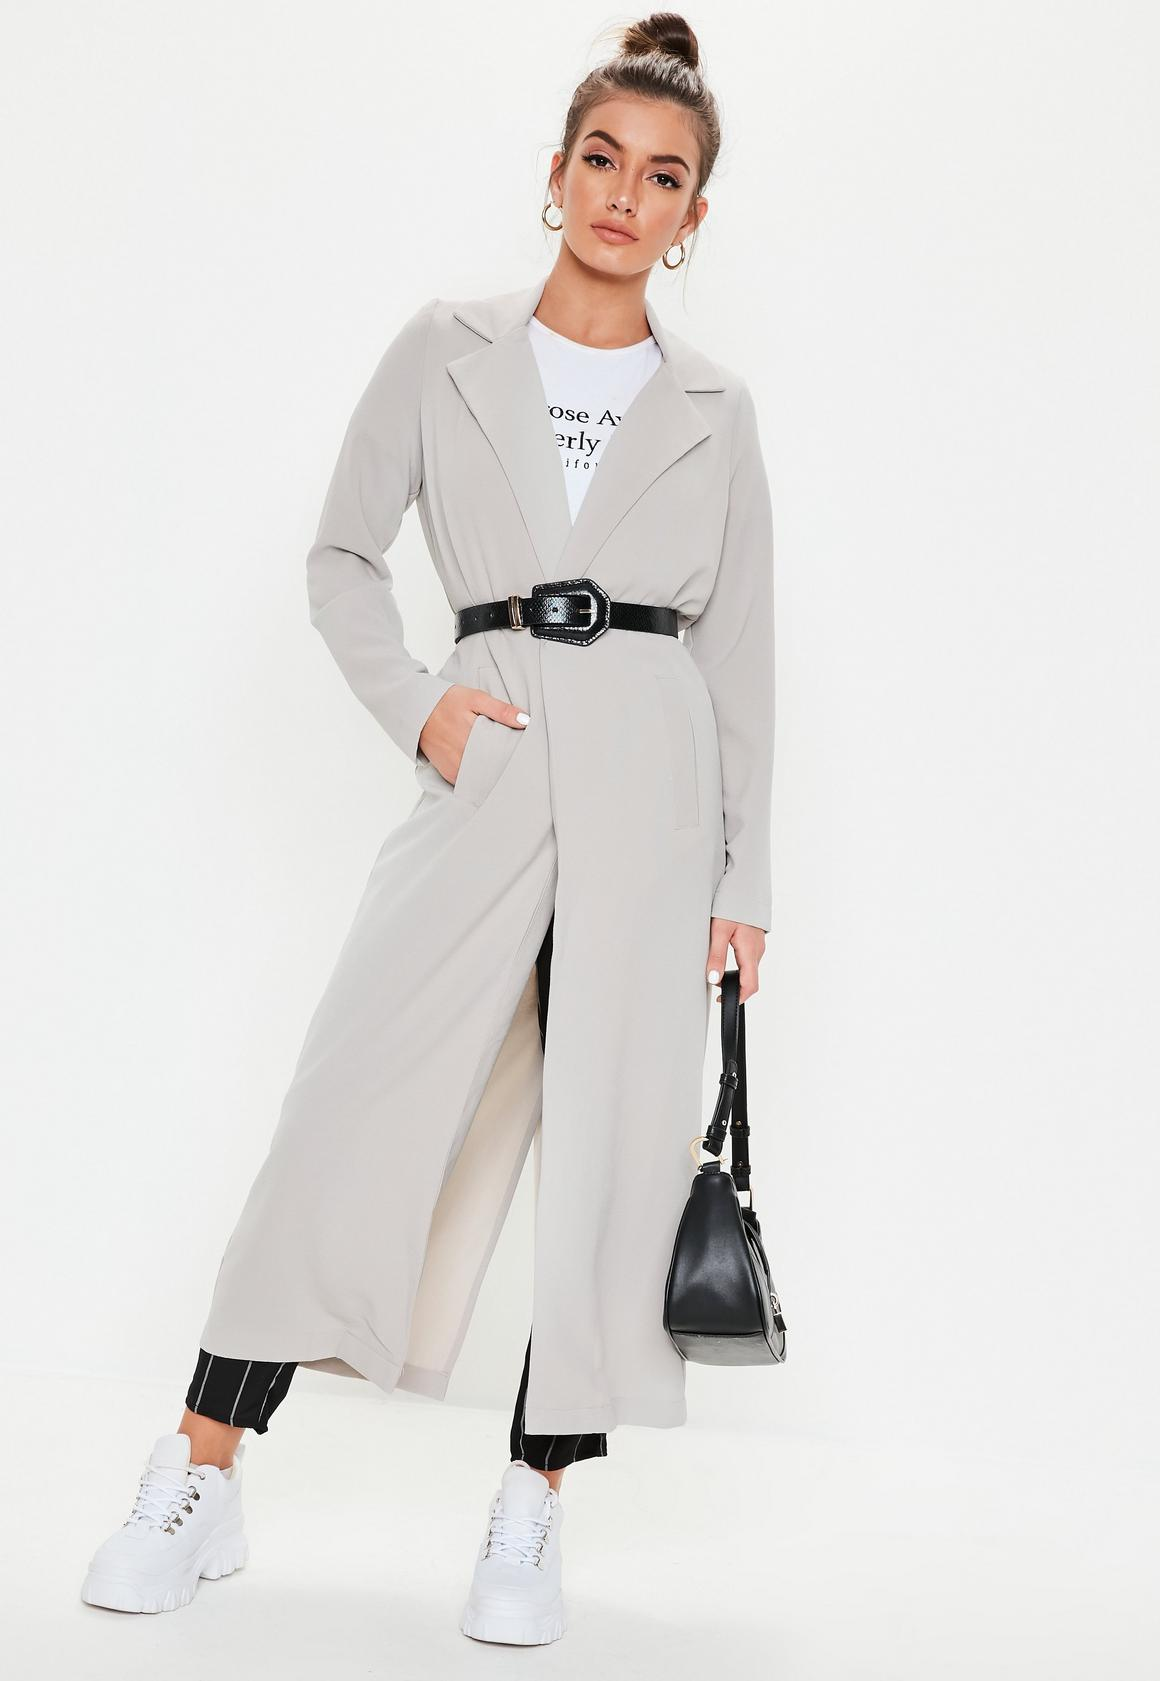 Duster Coat | Women's Long Duster Jacket - Missguided